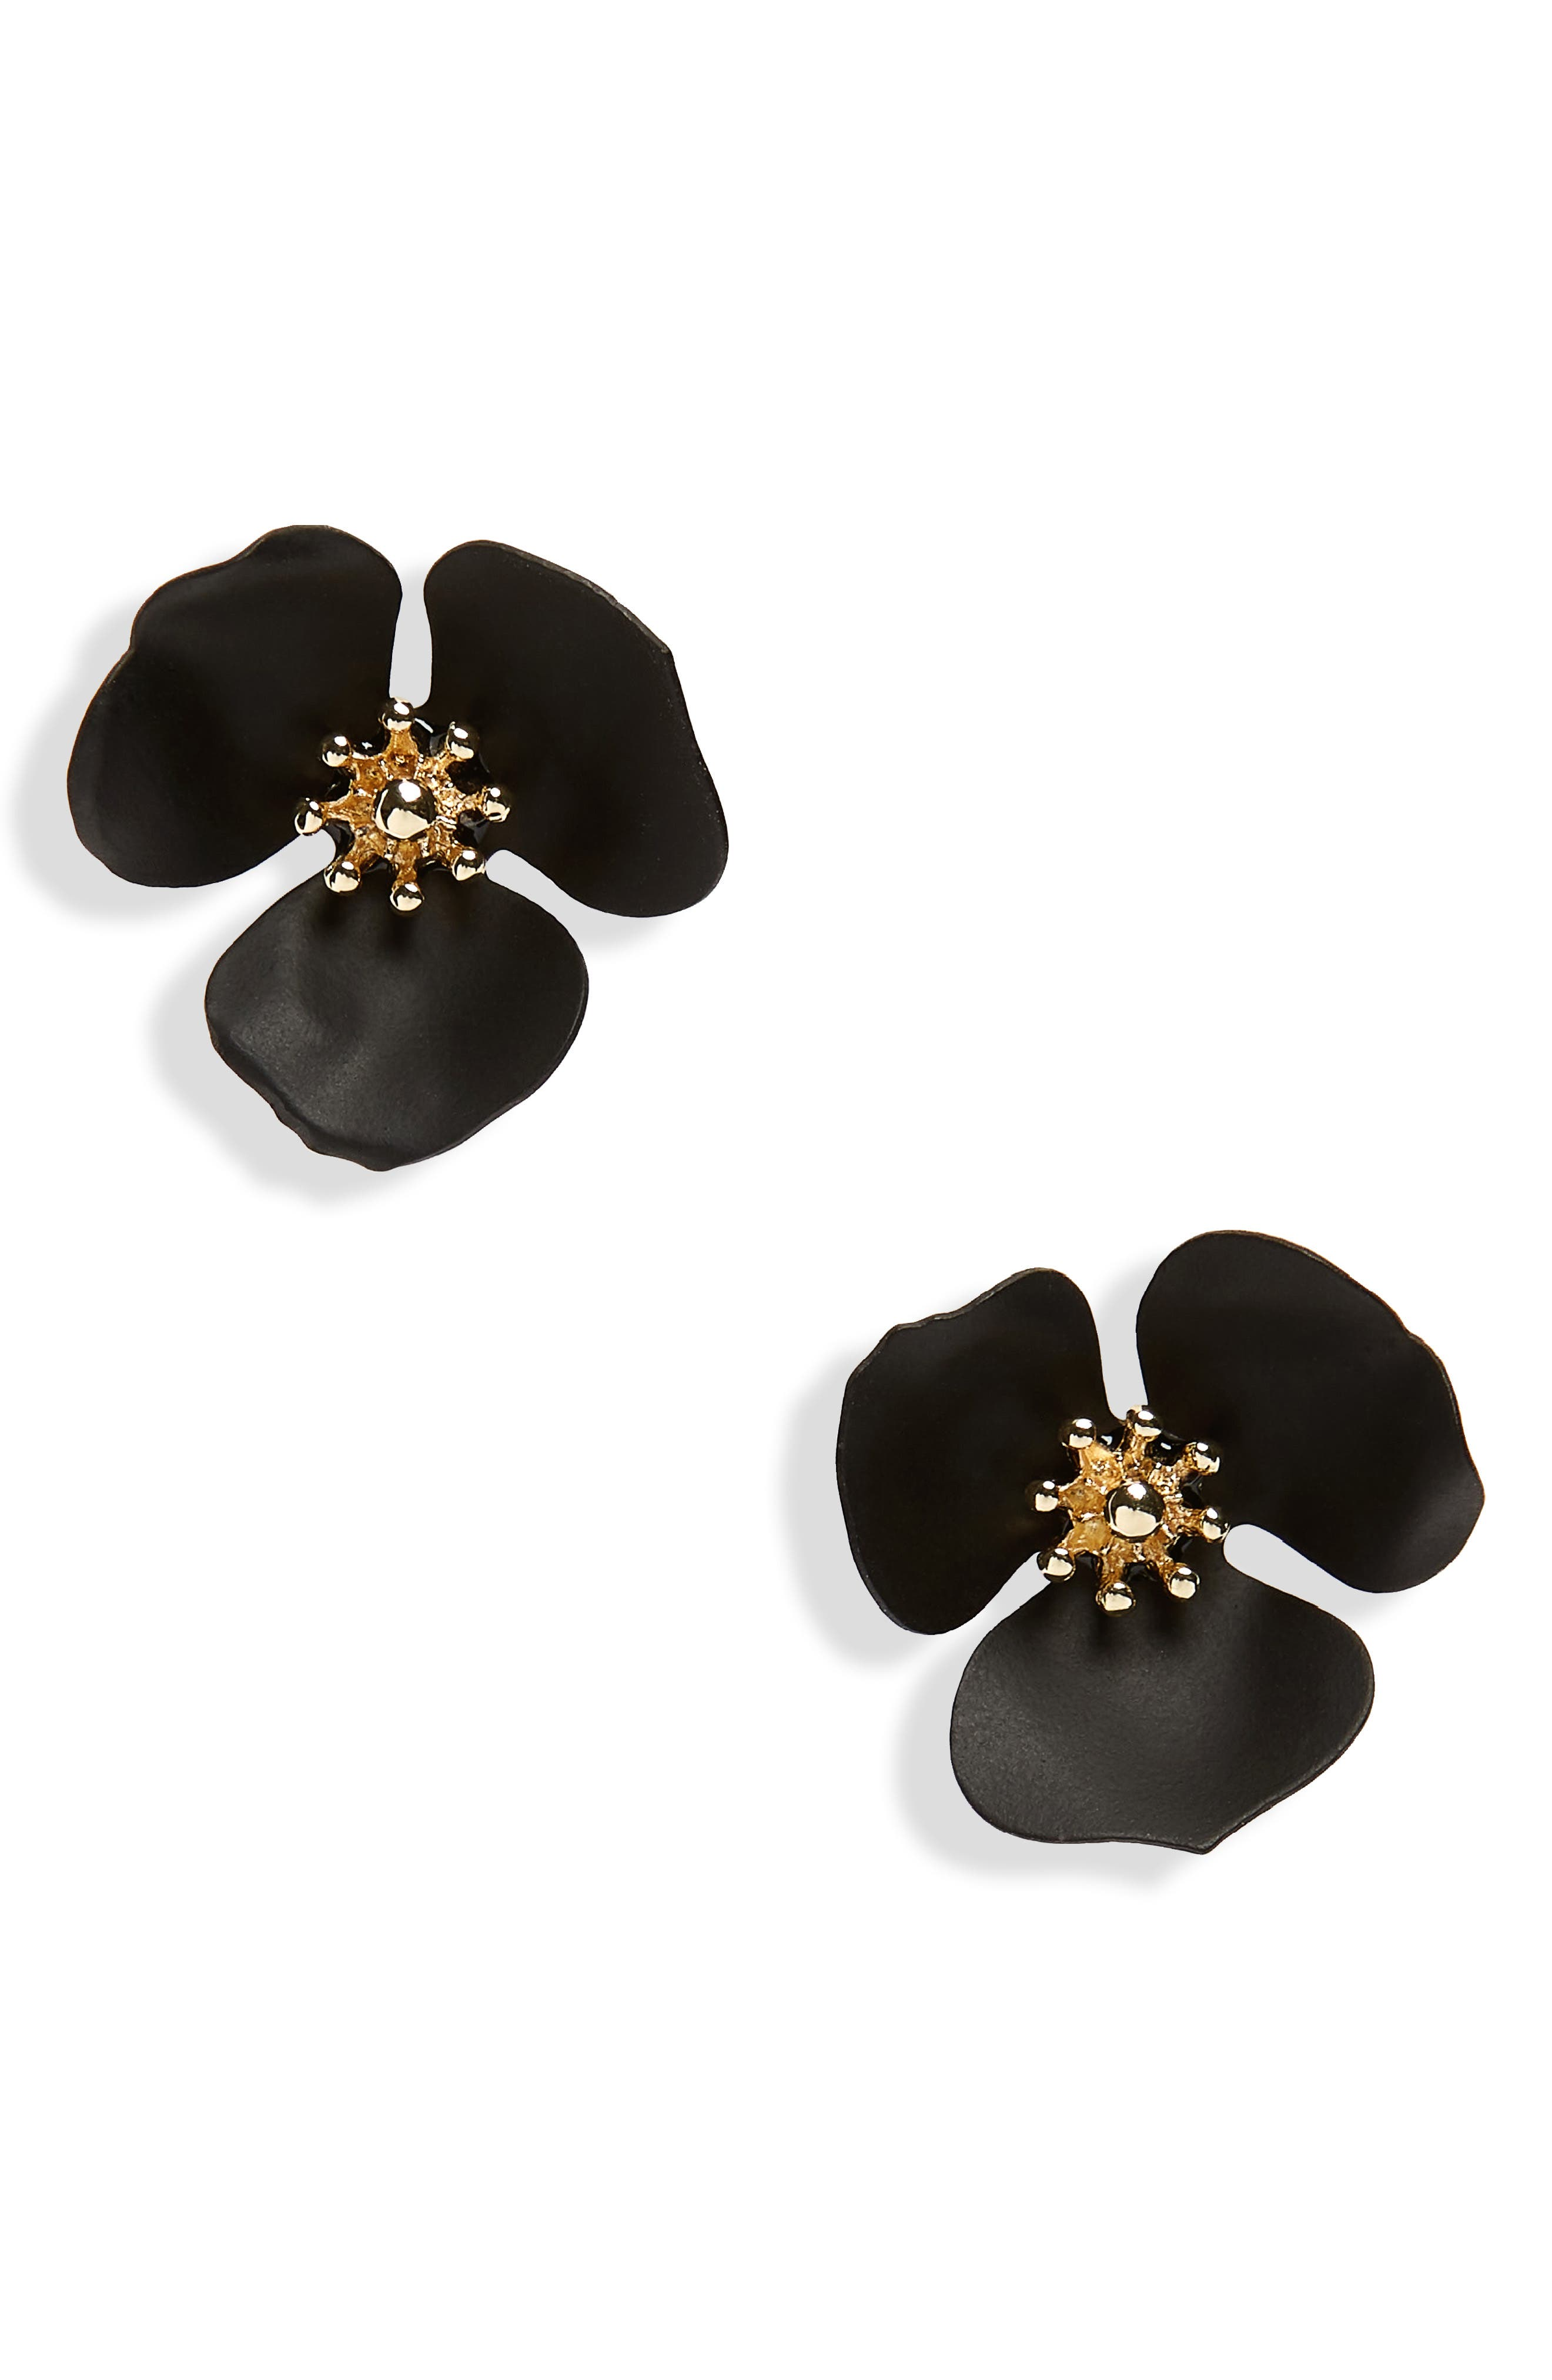 Lily Flower Stud Earrings,                             Main thumbnail 1, color,                             001